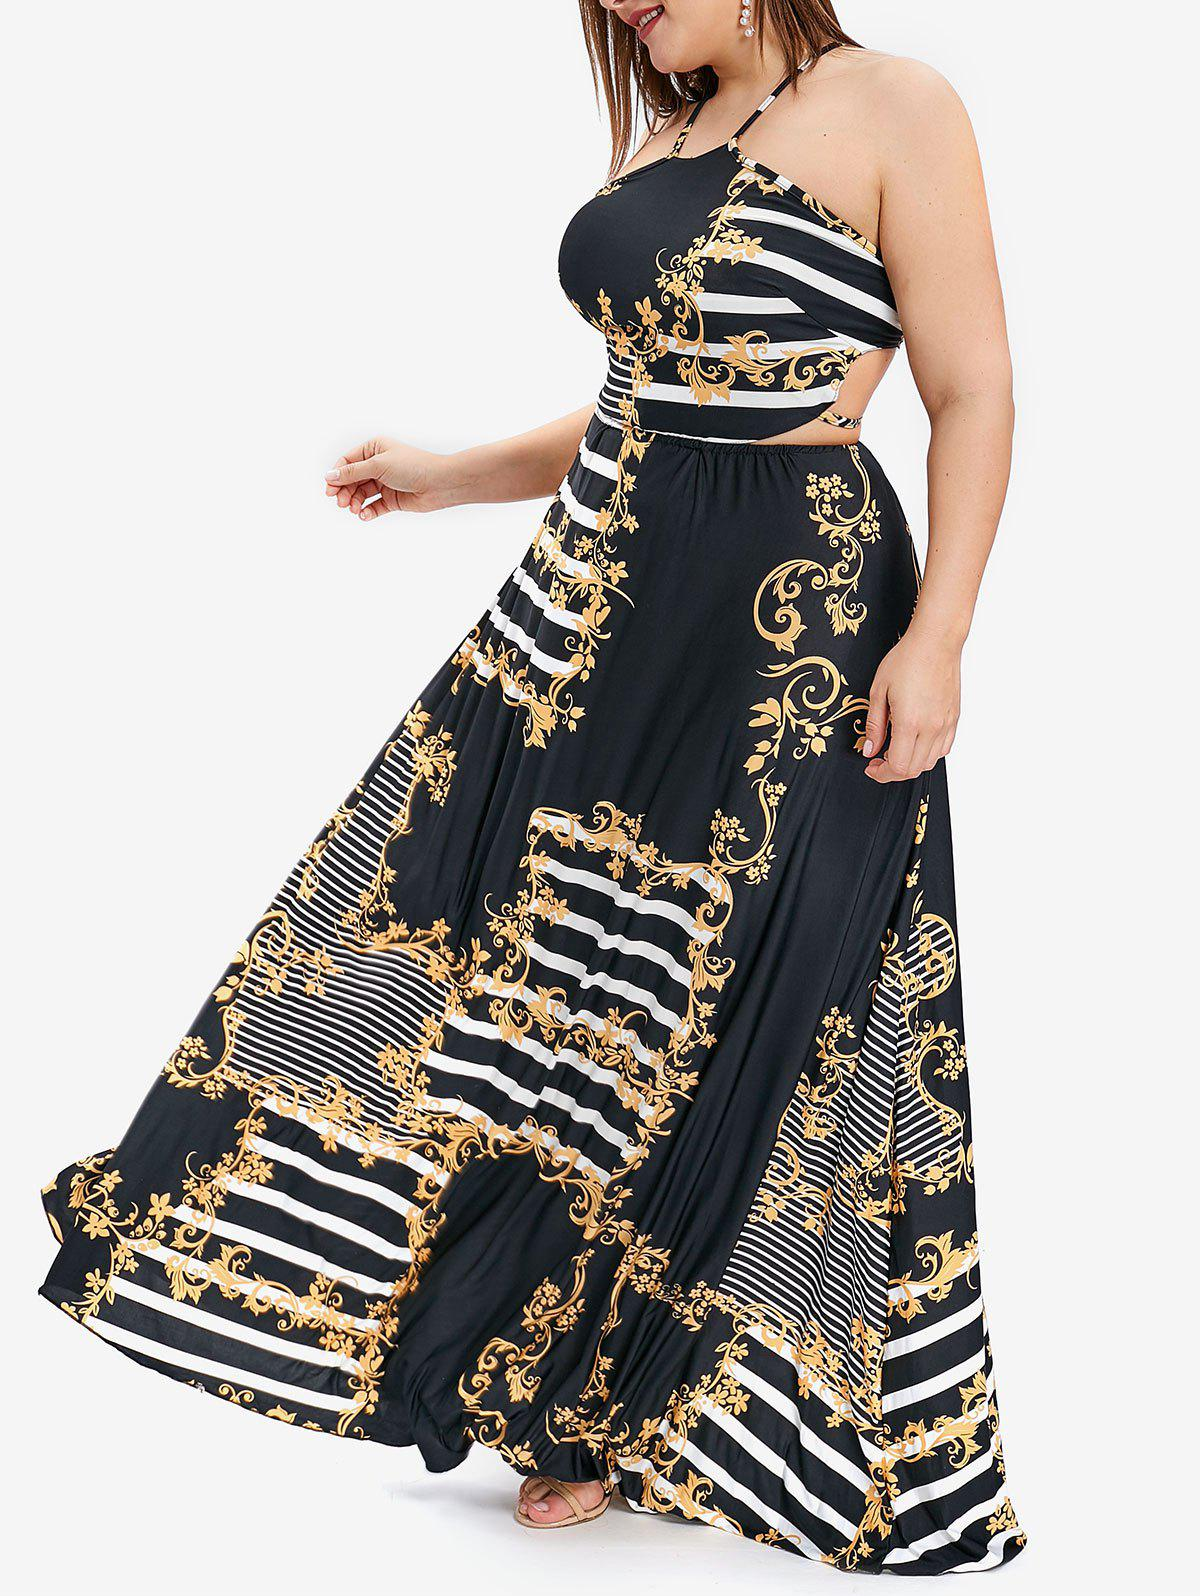 49% OFF] Striped And Floral Print Open Back Plus Size Maxi Dress ...